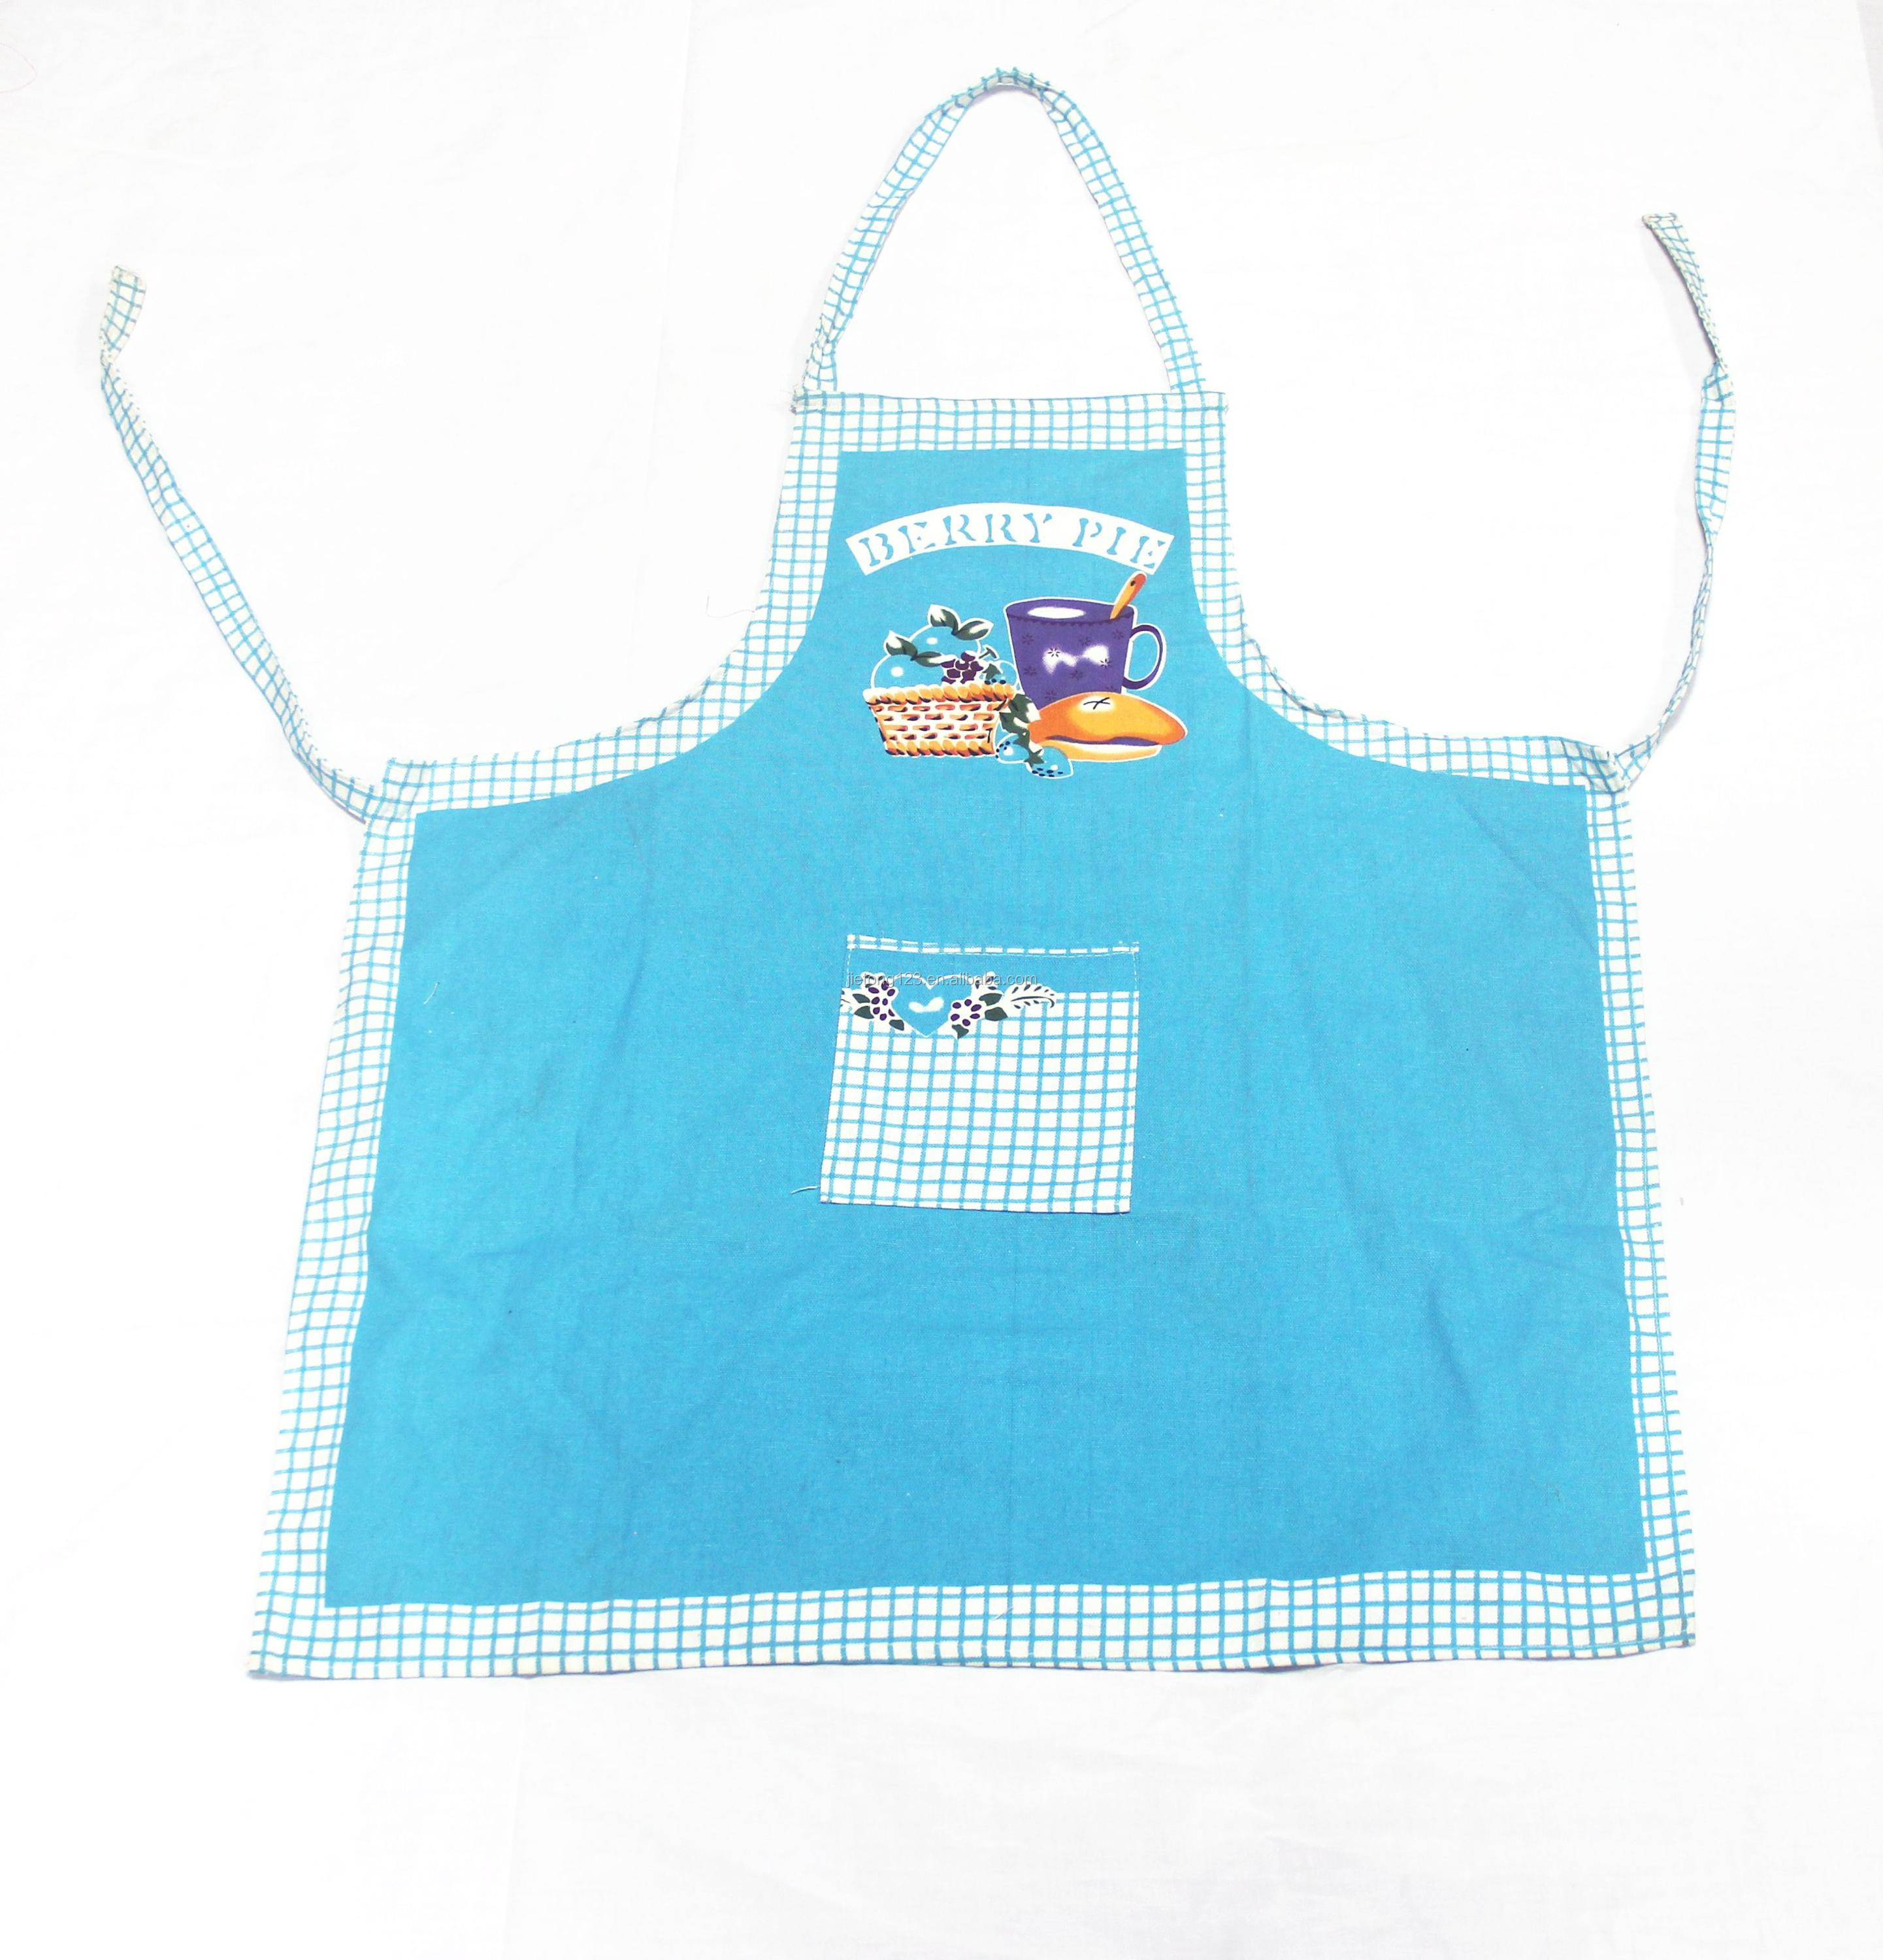 Ladies Kitchen Aprons, Ladies Kitchen Aprons Suppliers and ...